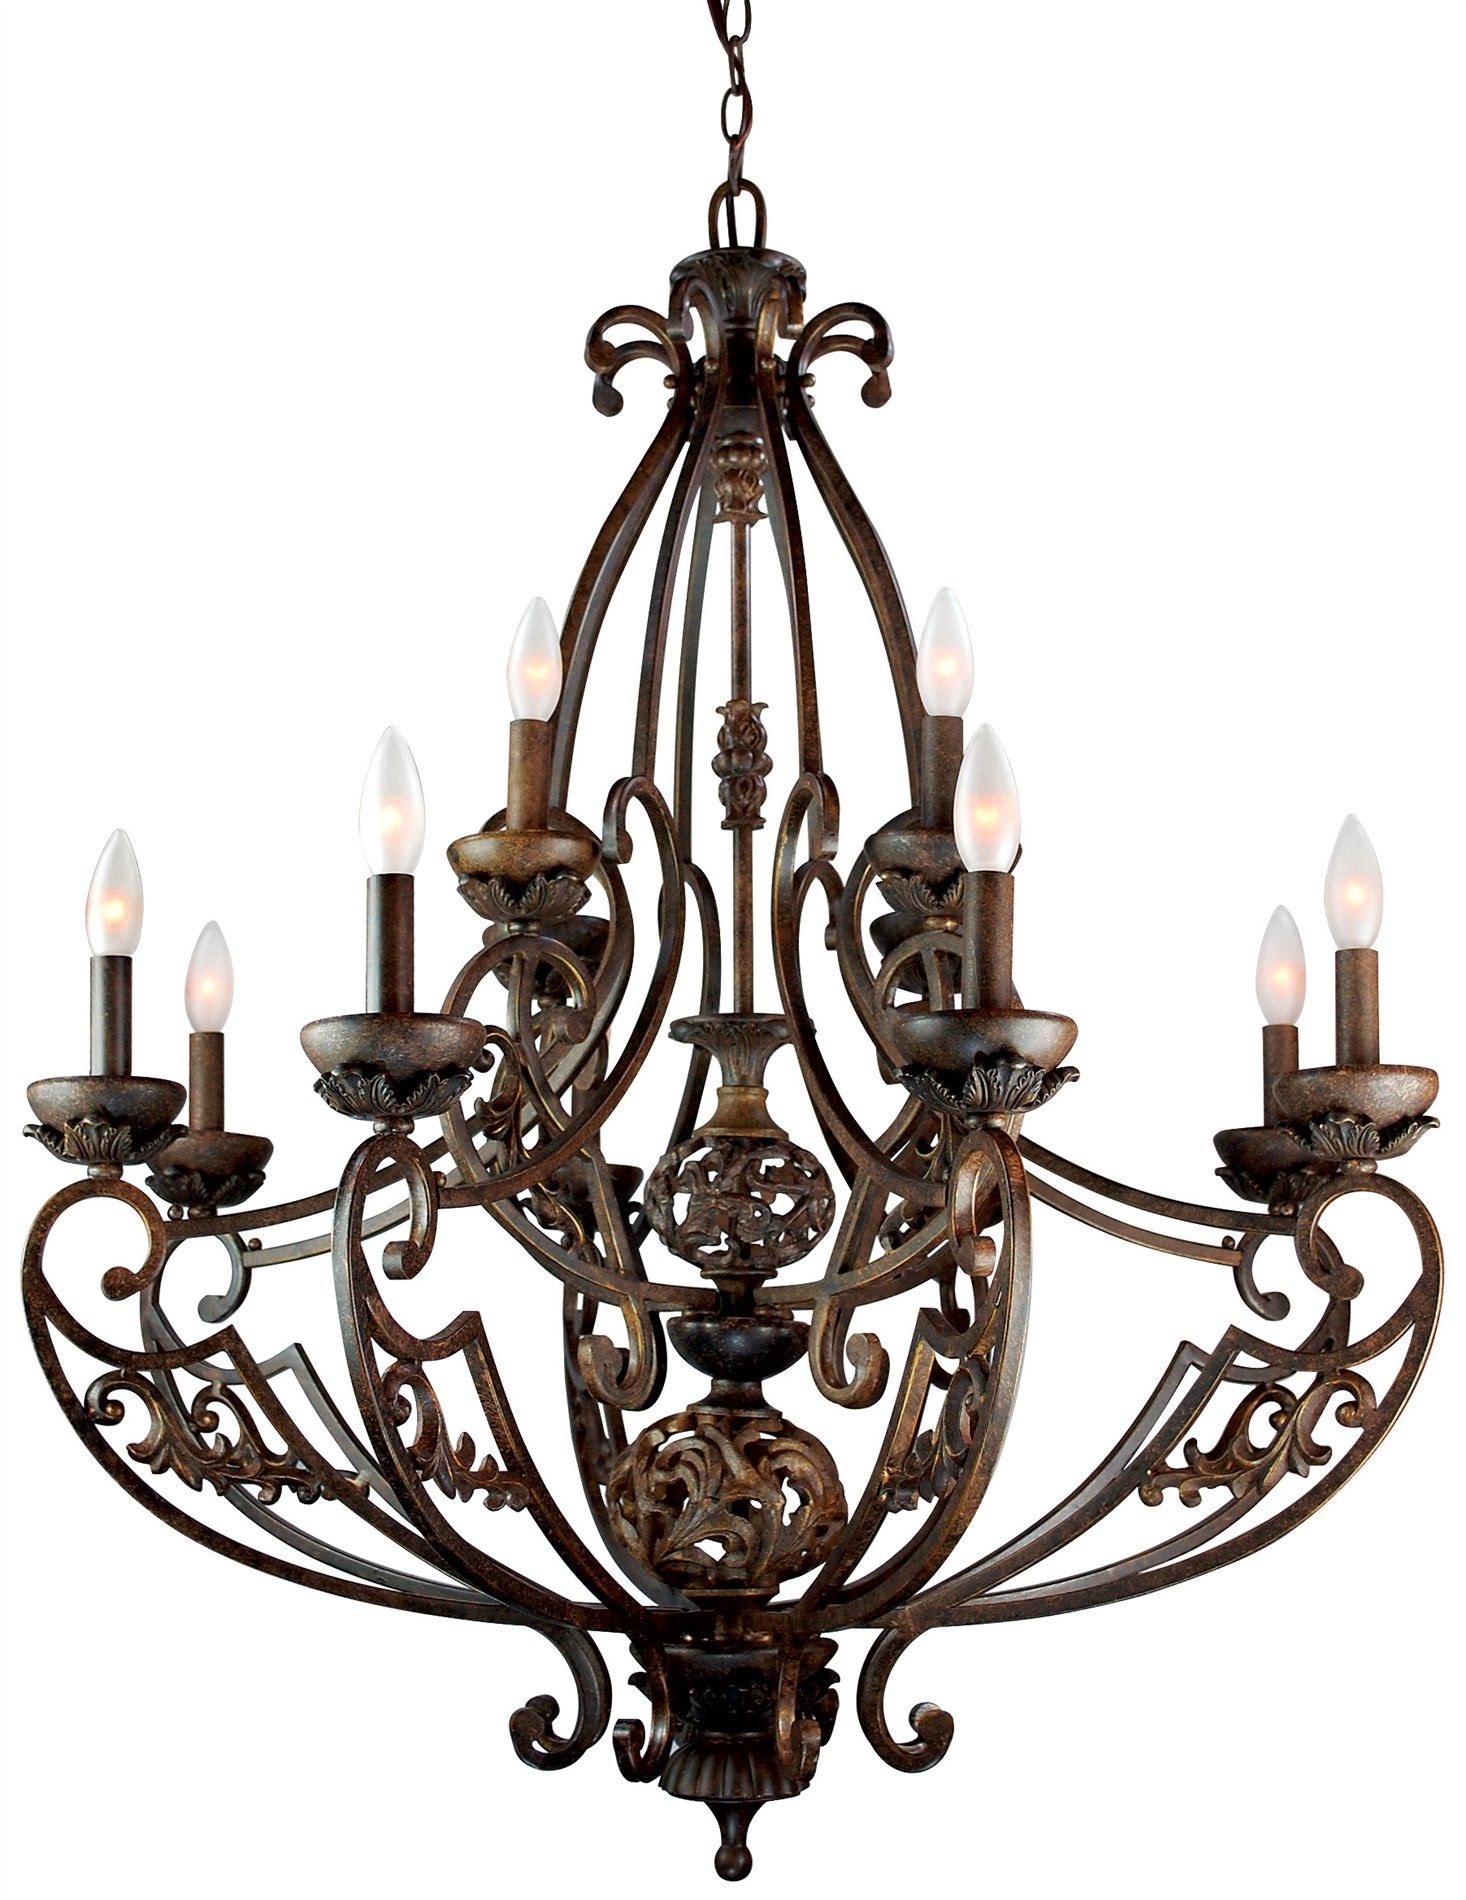 Trans Globe Lighting 2383 BRG Traditional Classic Chandelier TG